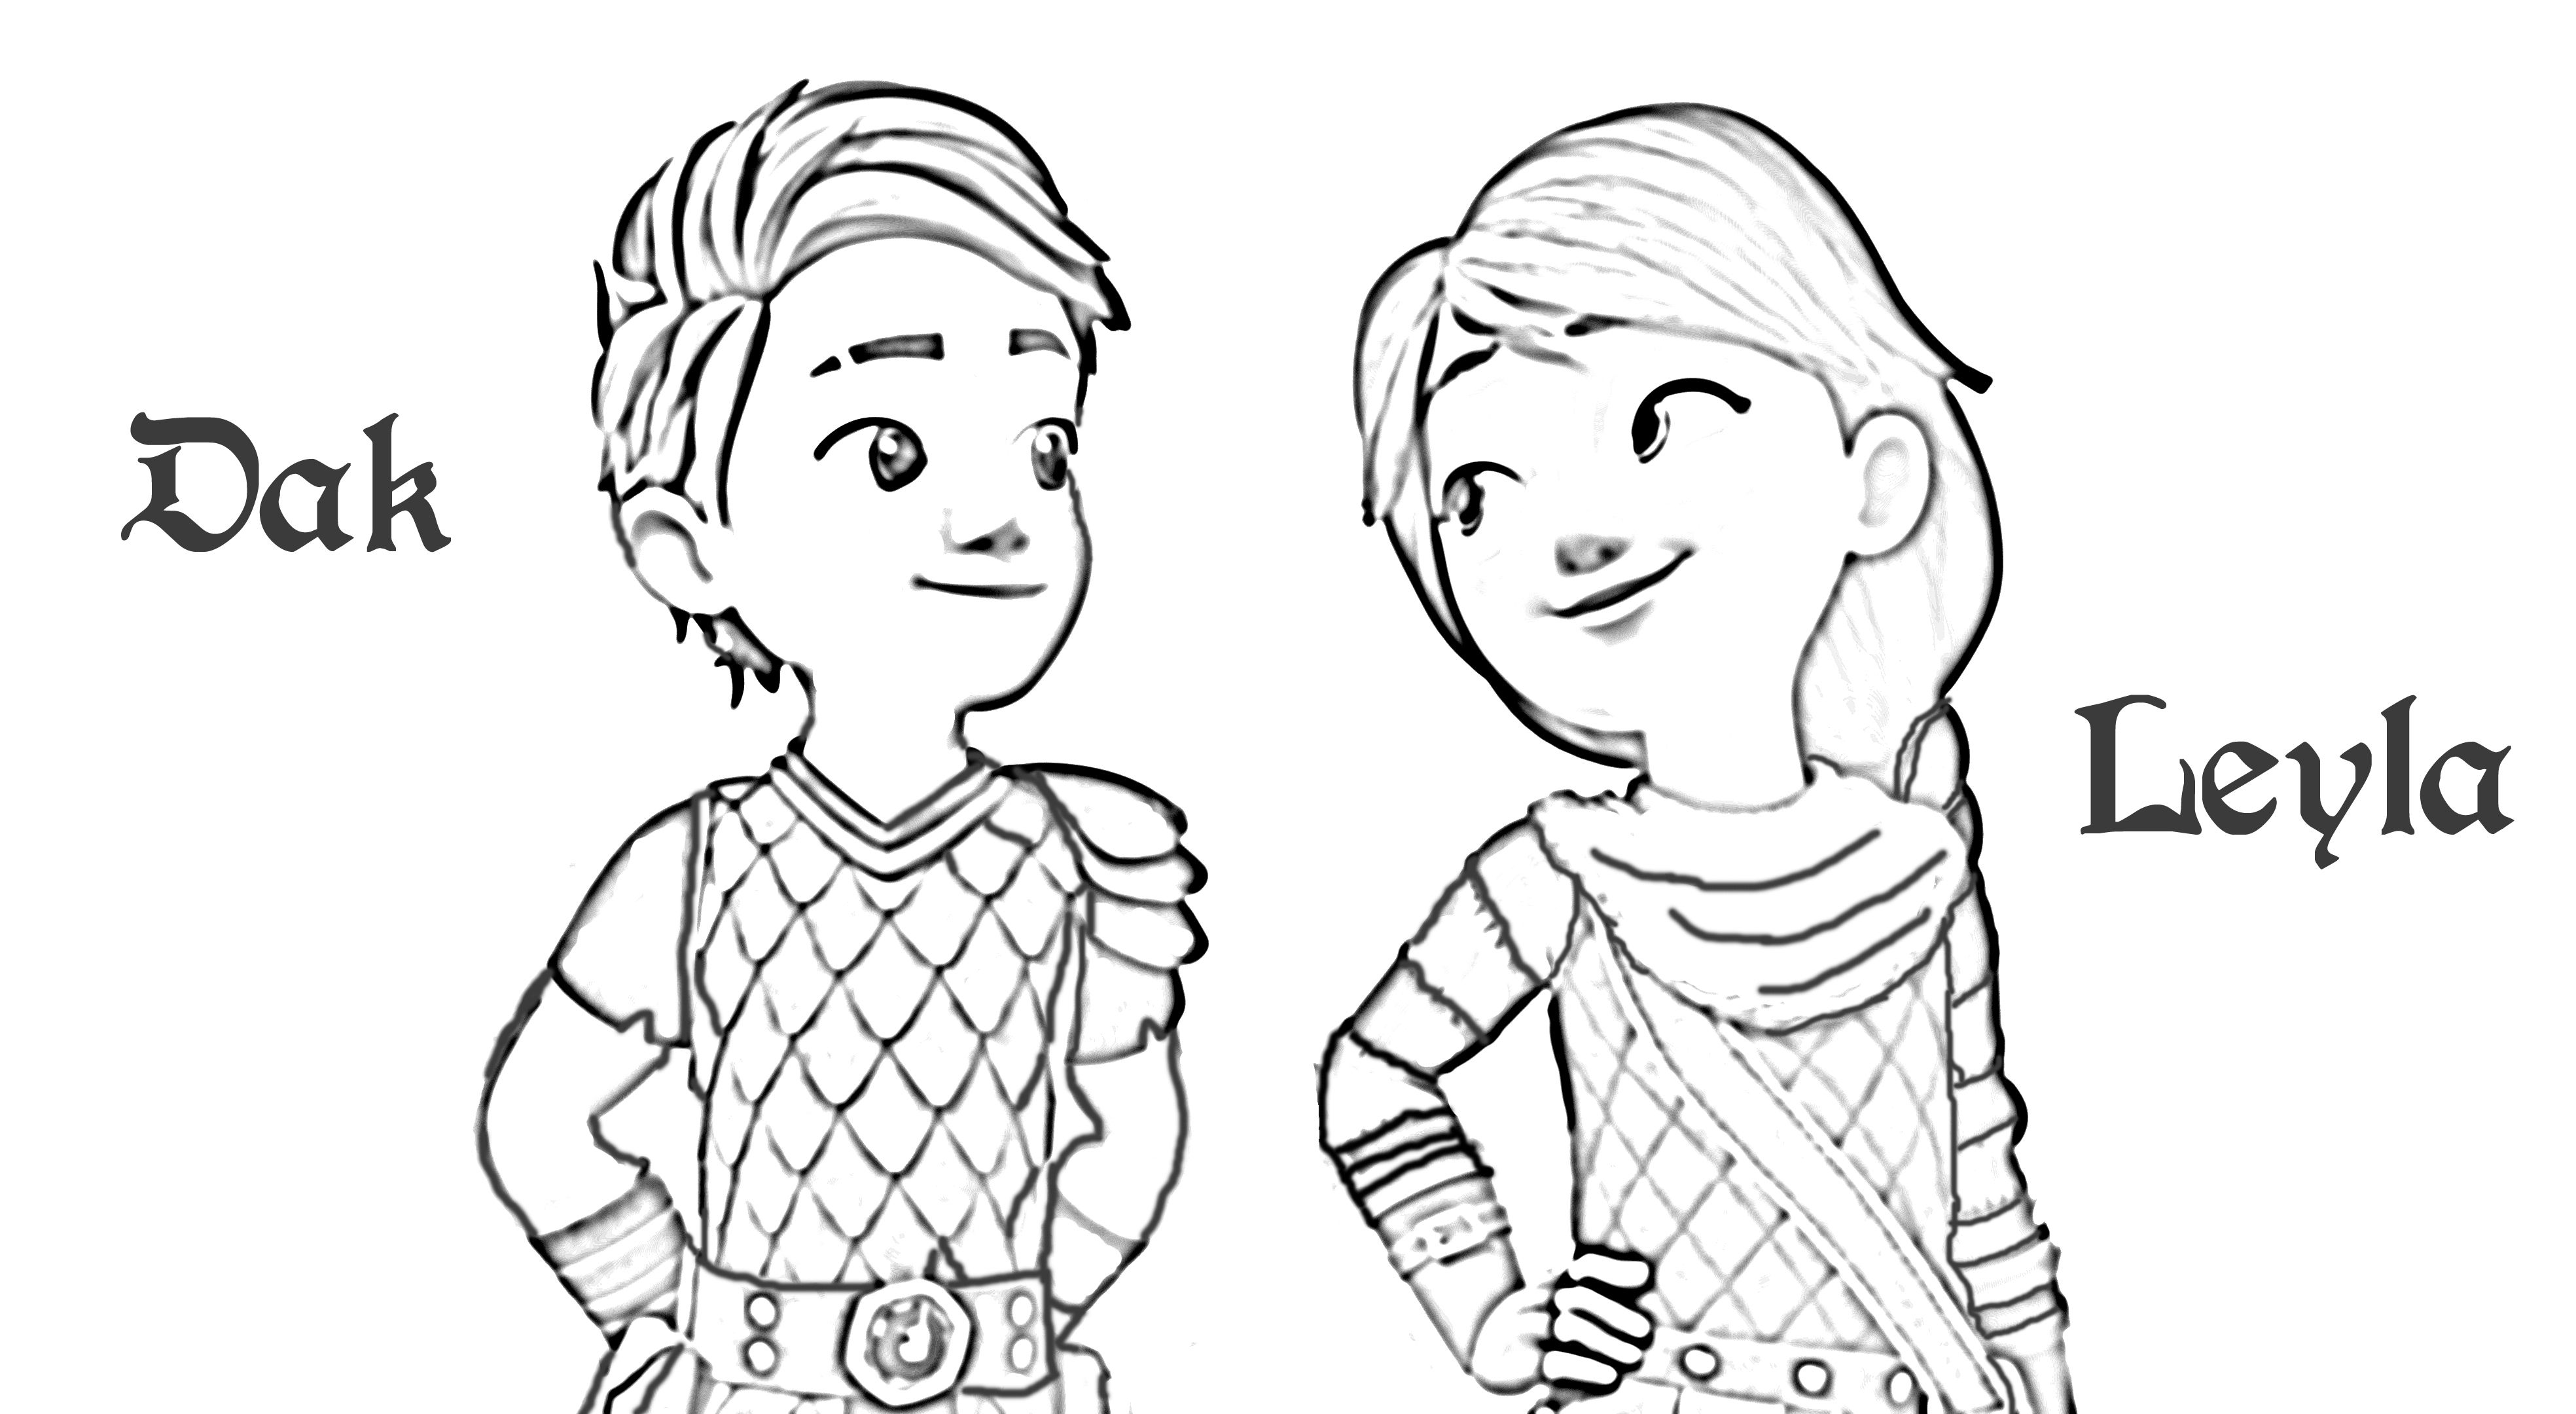 Dak Leyla Dragons Rescue Riders Coloring Page Coloring Pages Dragon Party How Train Your Dragon